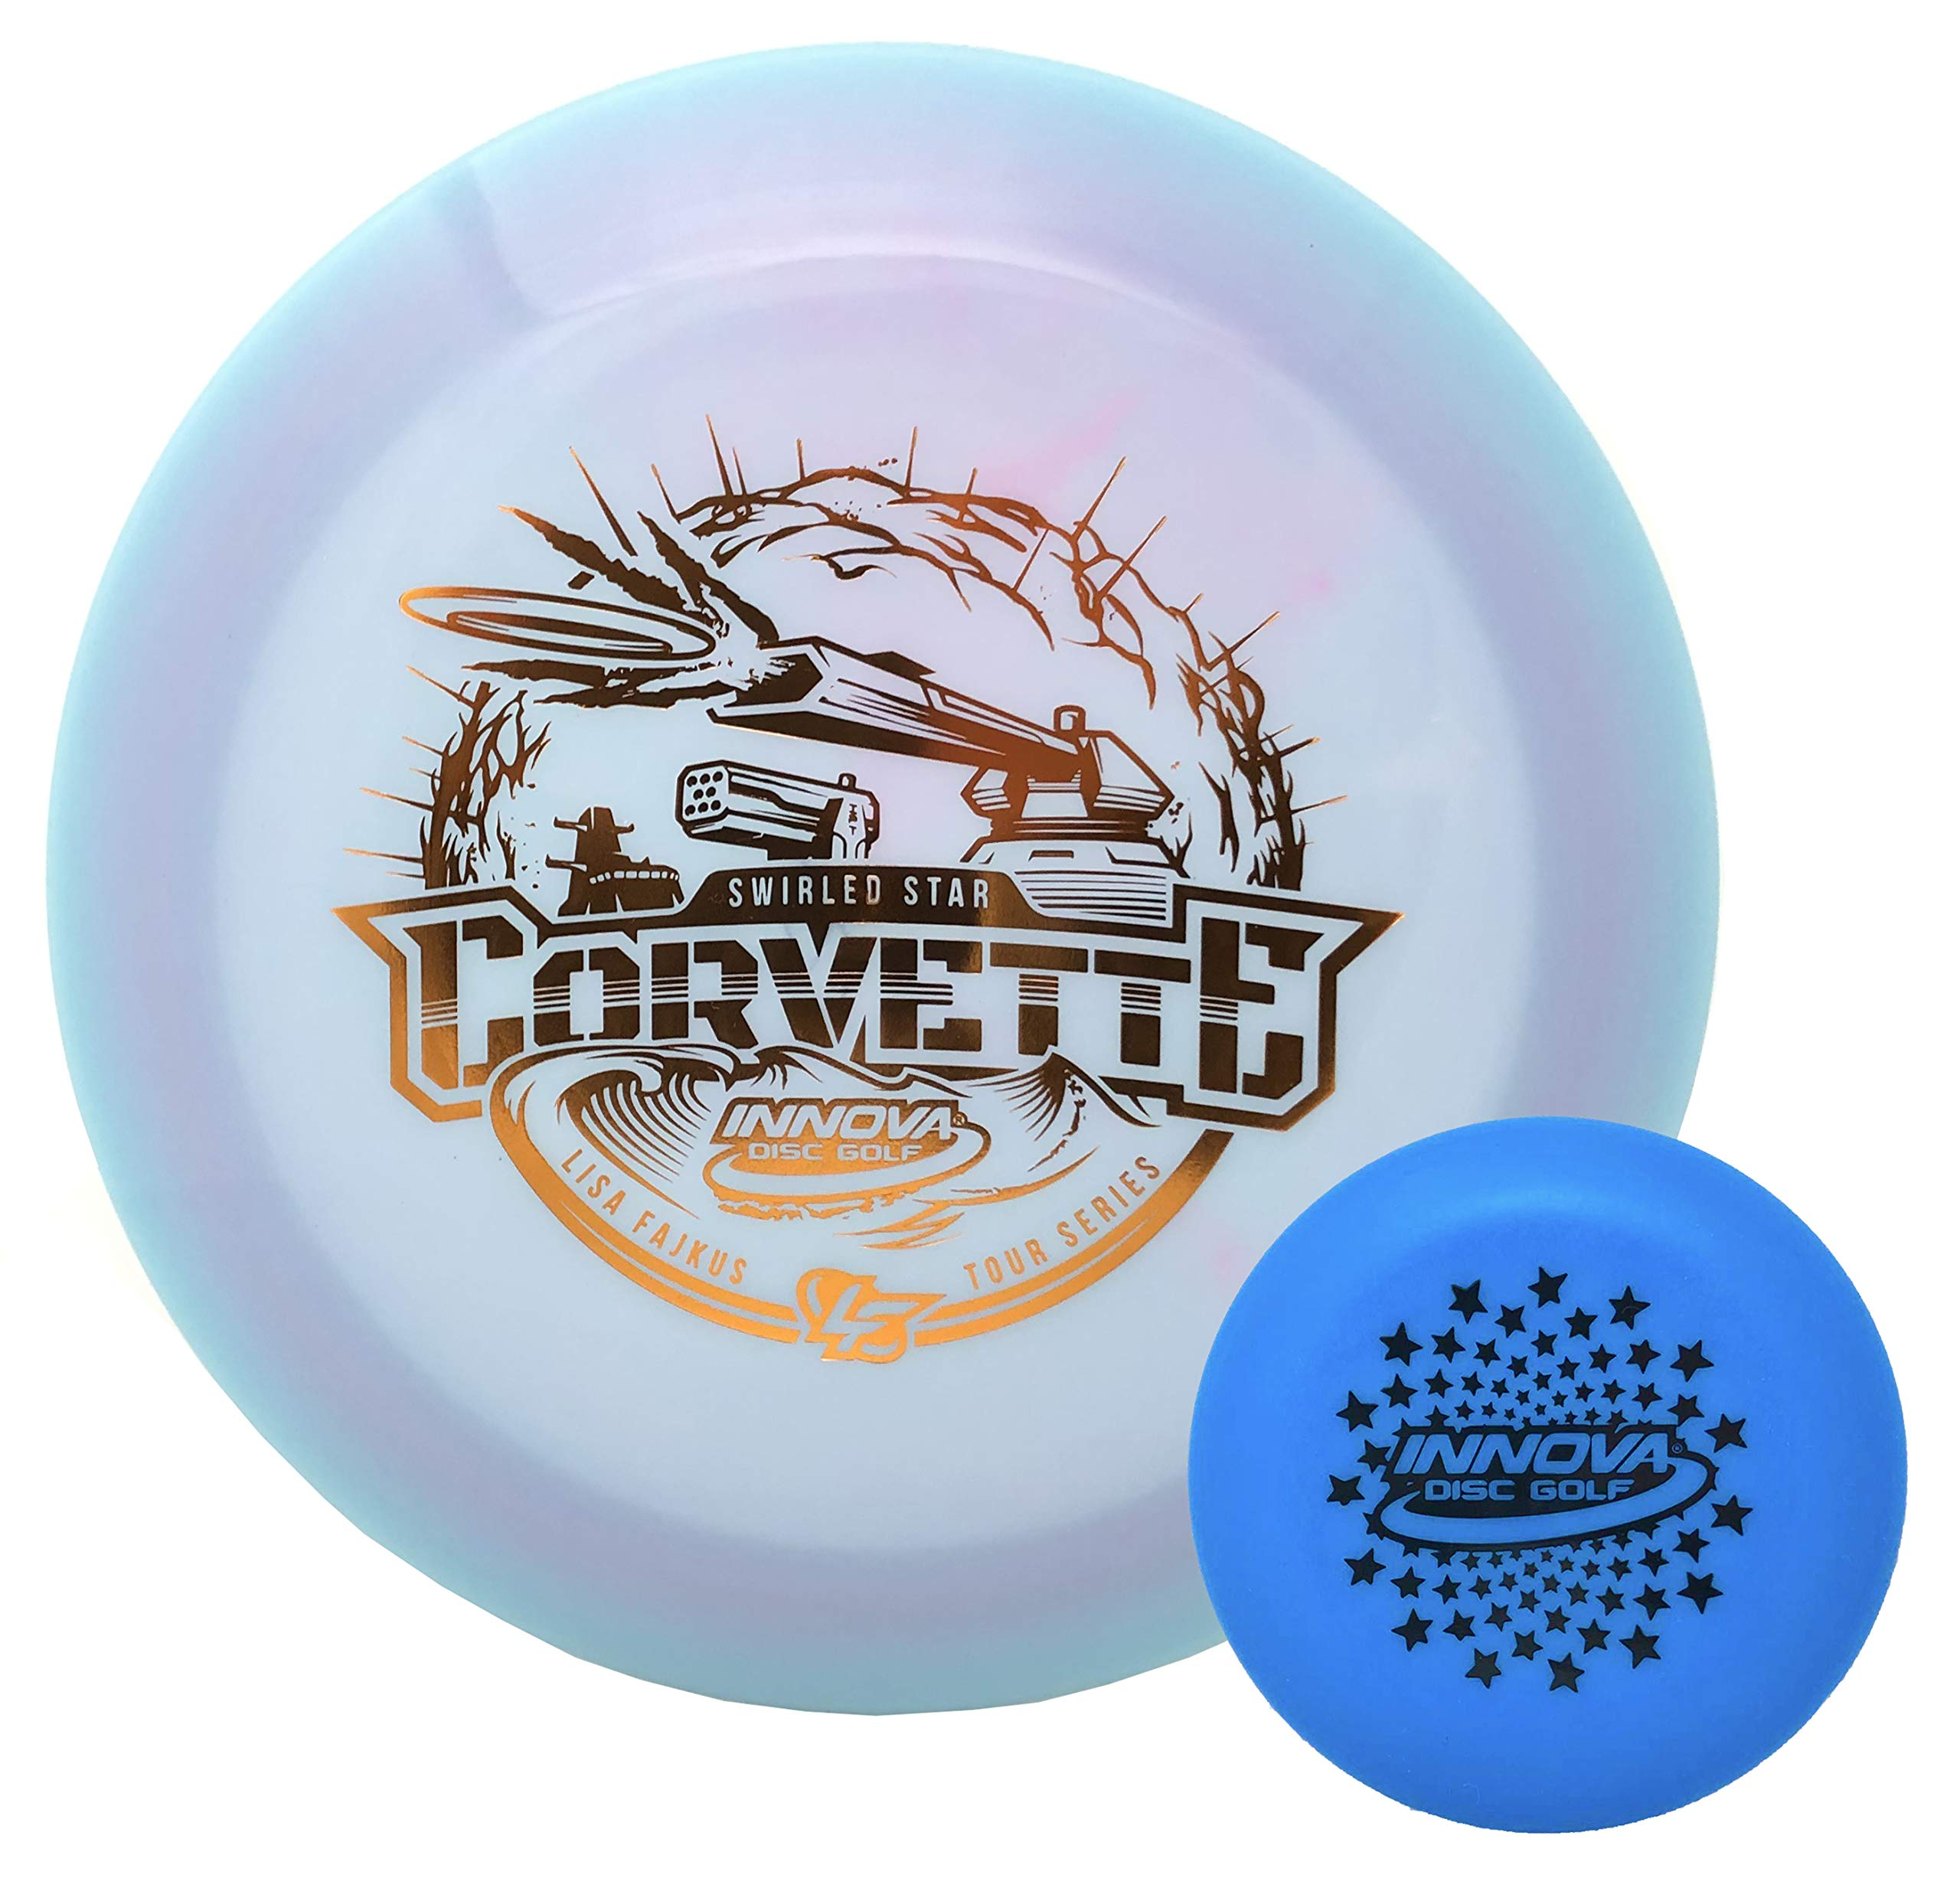 Innova Disc Golf Tour Series Lisa Fajkus Swirled Star Color Glow Champion Corvette 173-175g with Stars Stamp Innova Mini (Colors Will Vary) by Innova Disc